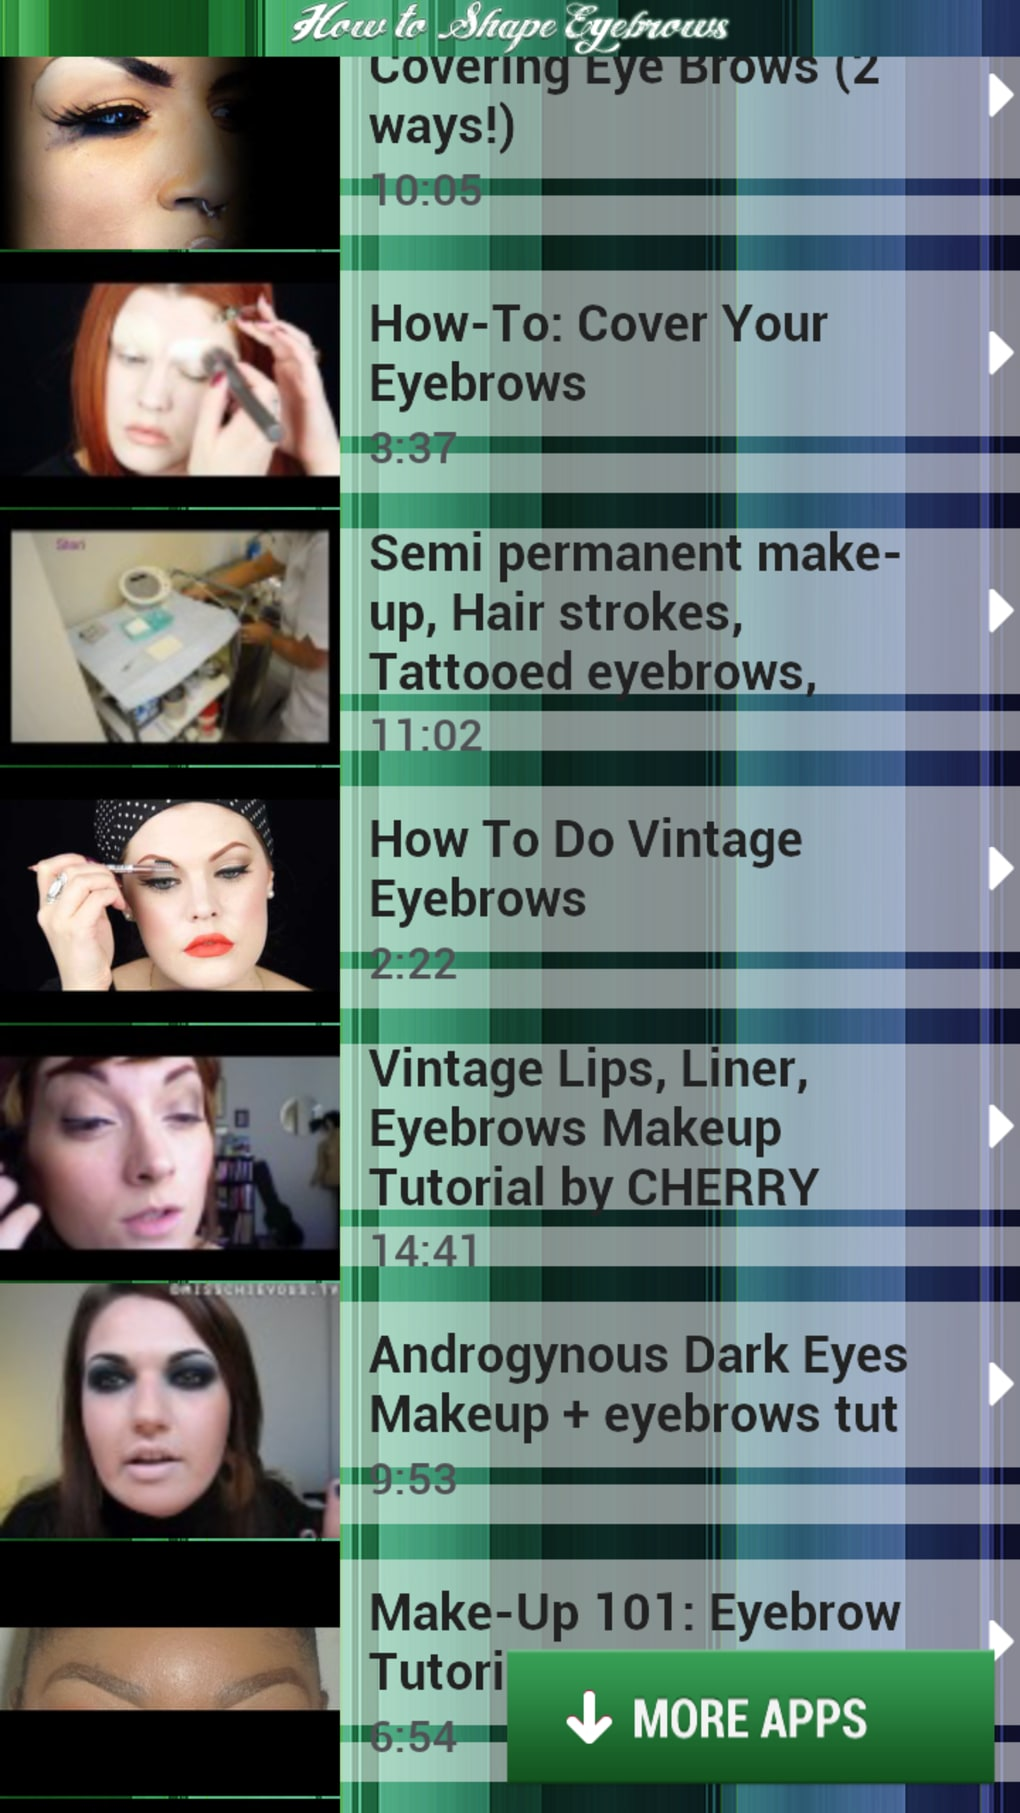 How to Shape Eyebrows for Android - Download